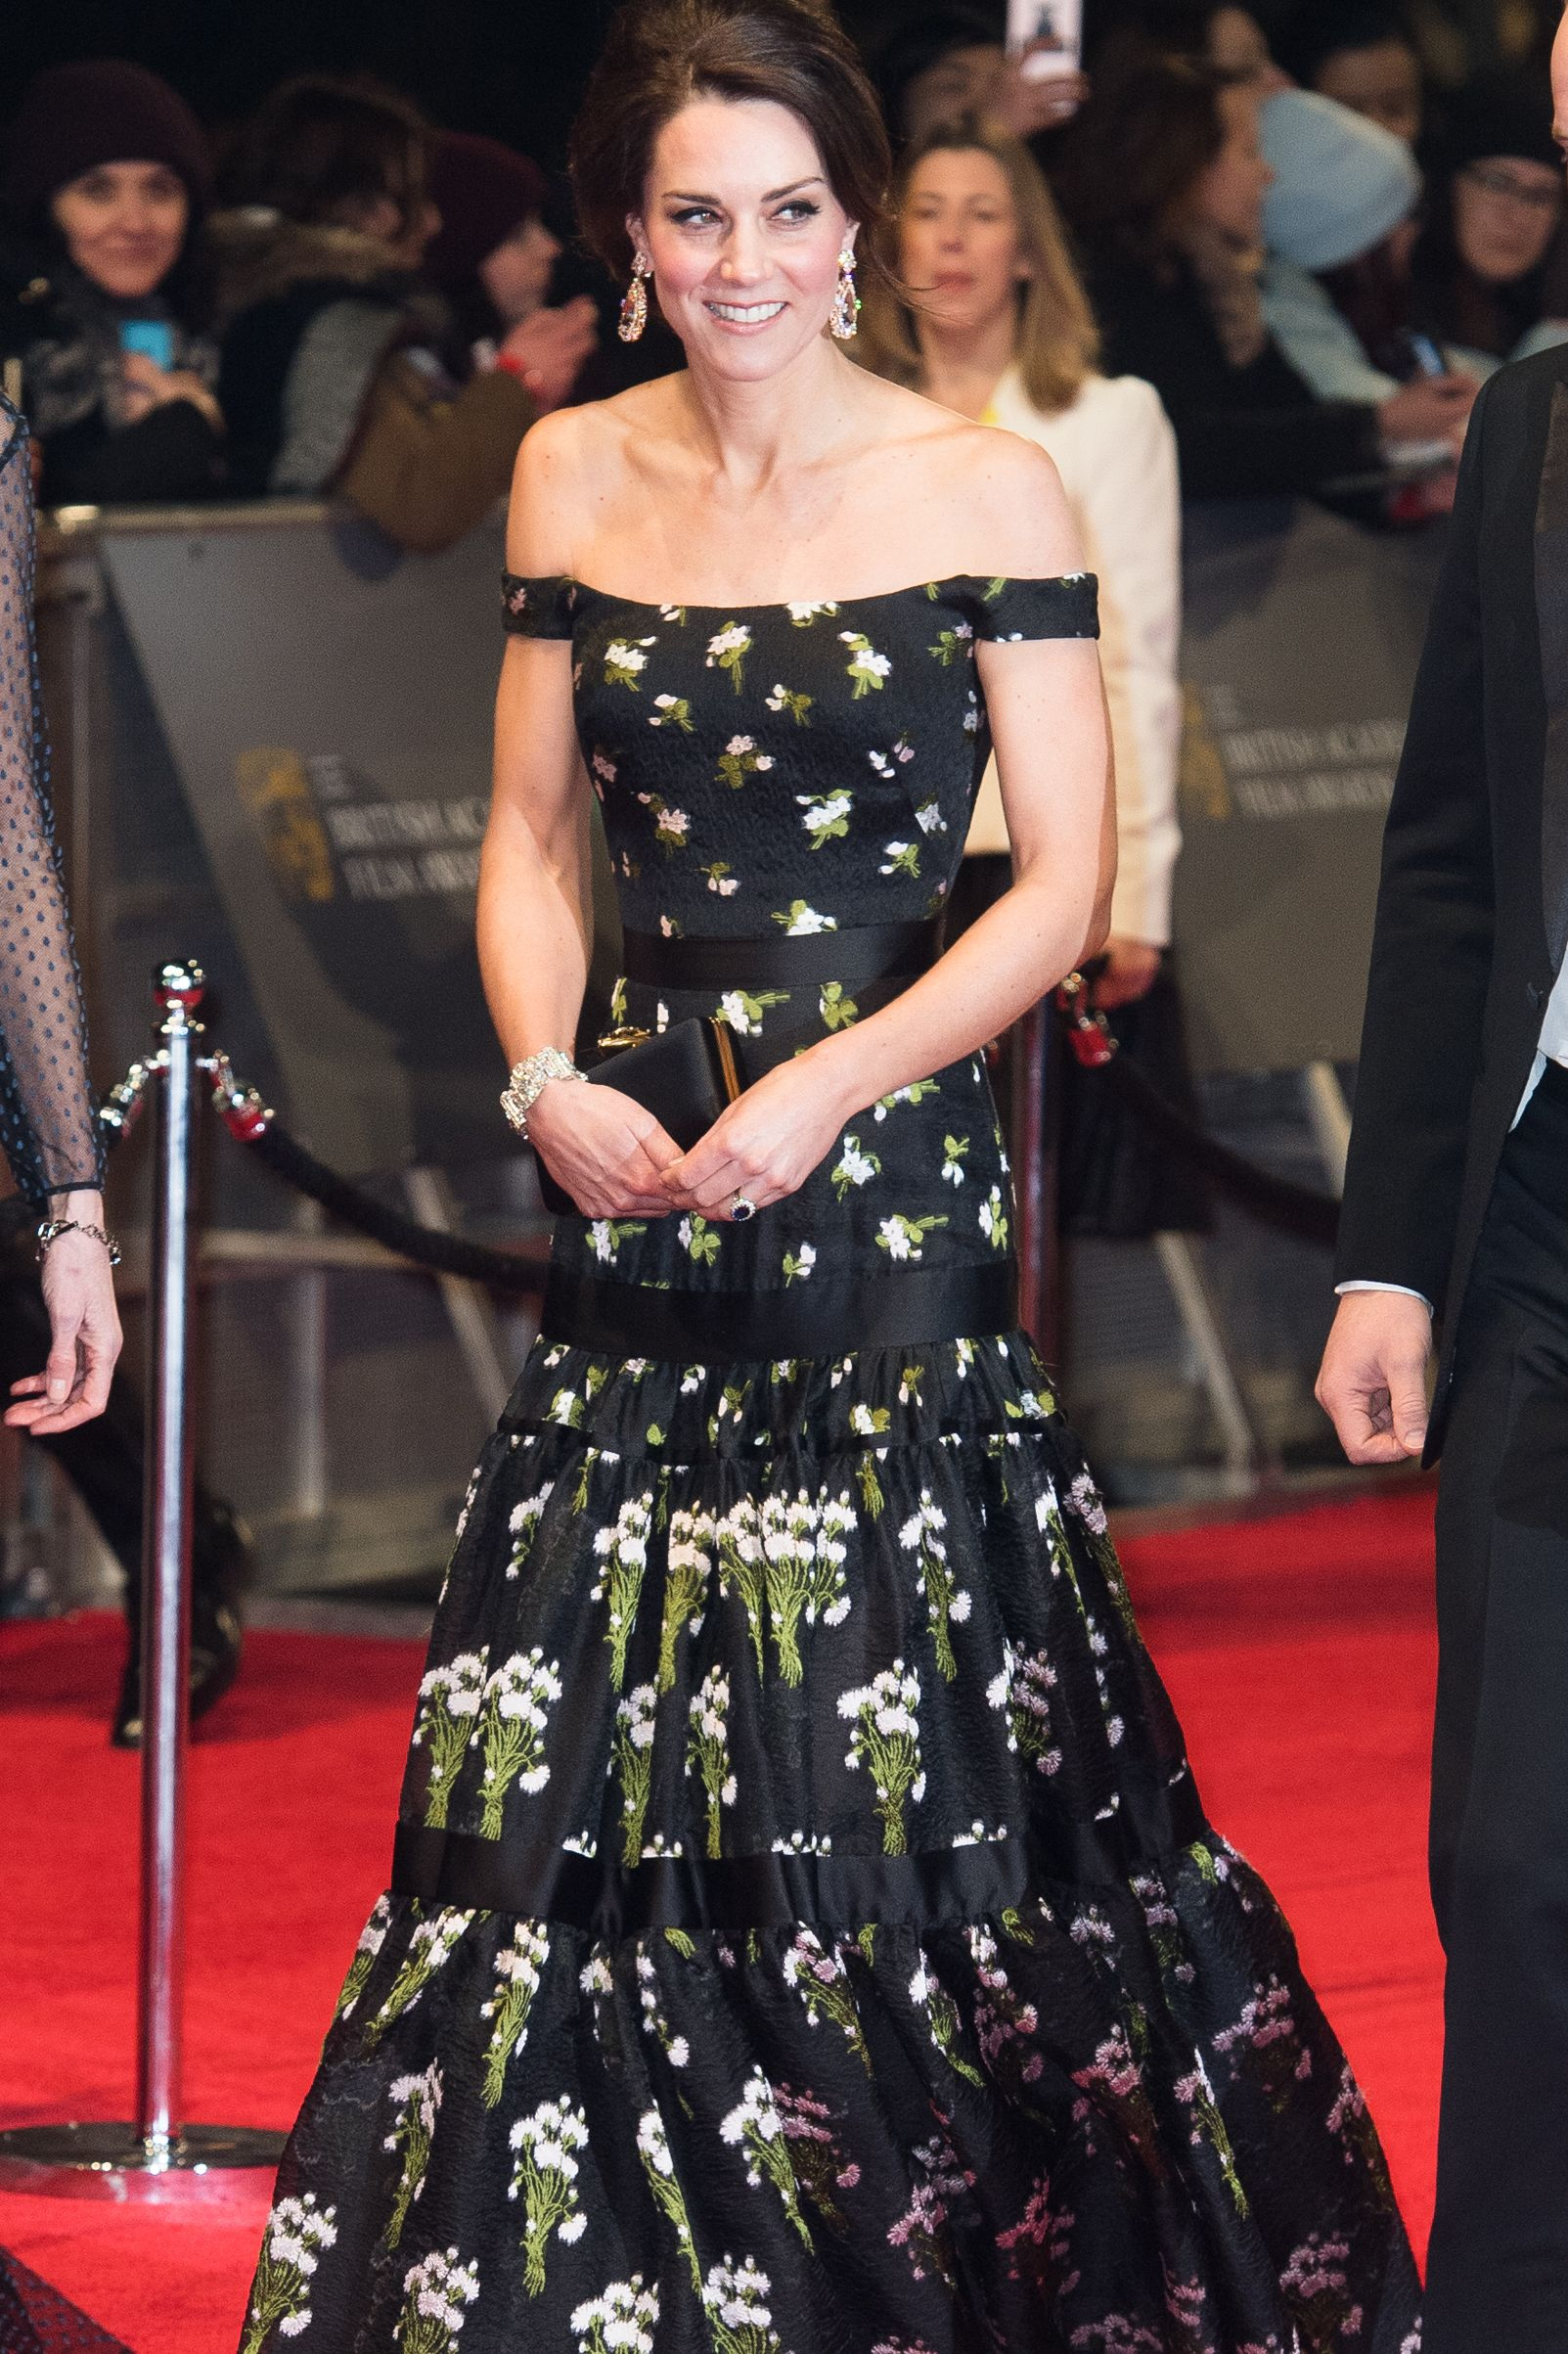 Kate's Off-the-Shoulder Gown